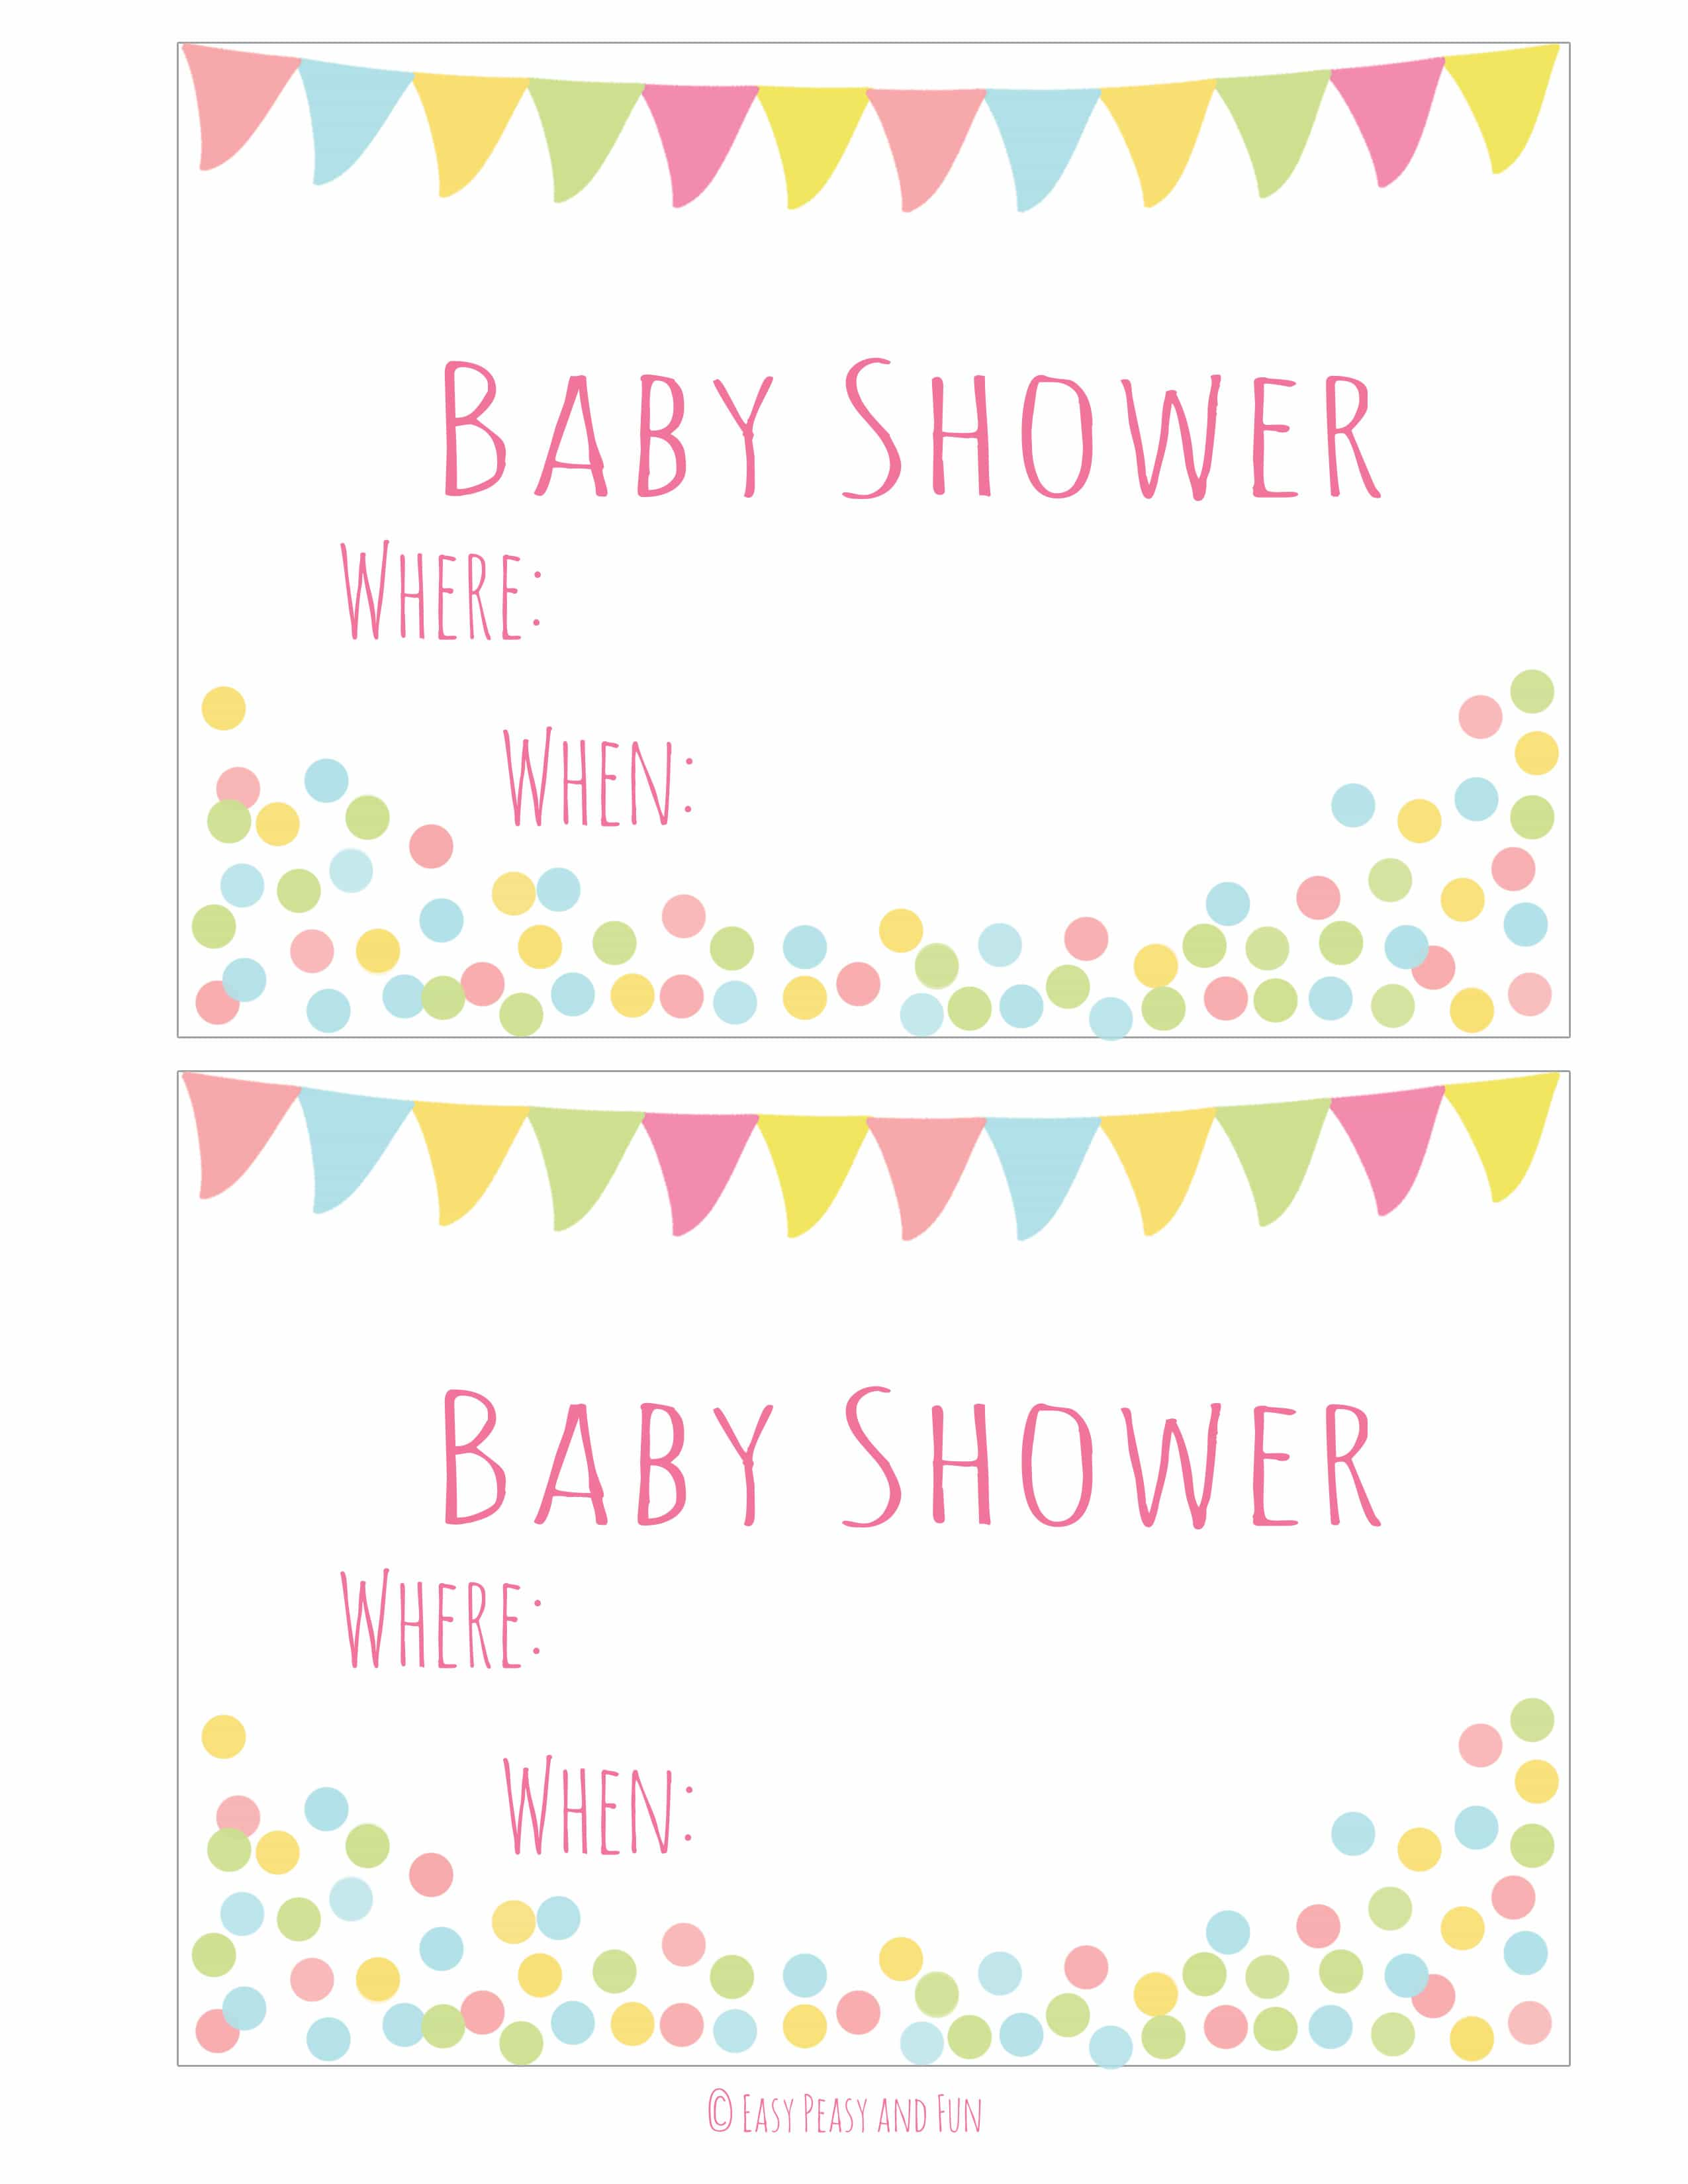 e5fc9ff26770 Free Printable Baby Shower Invitation - Easy Peasy and Fun